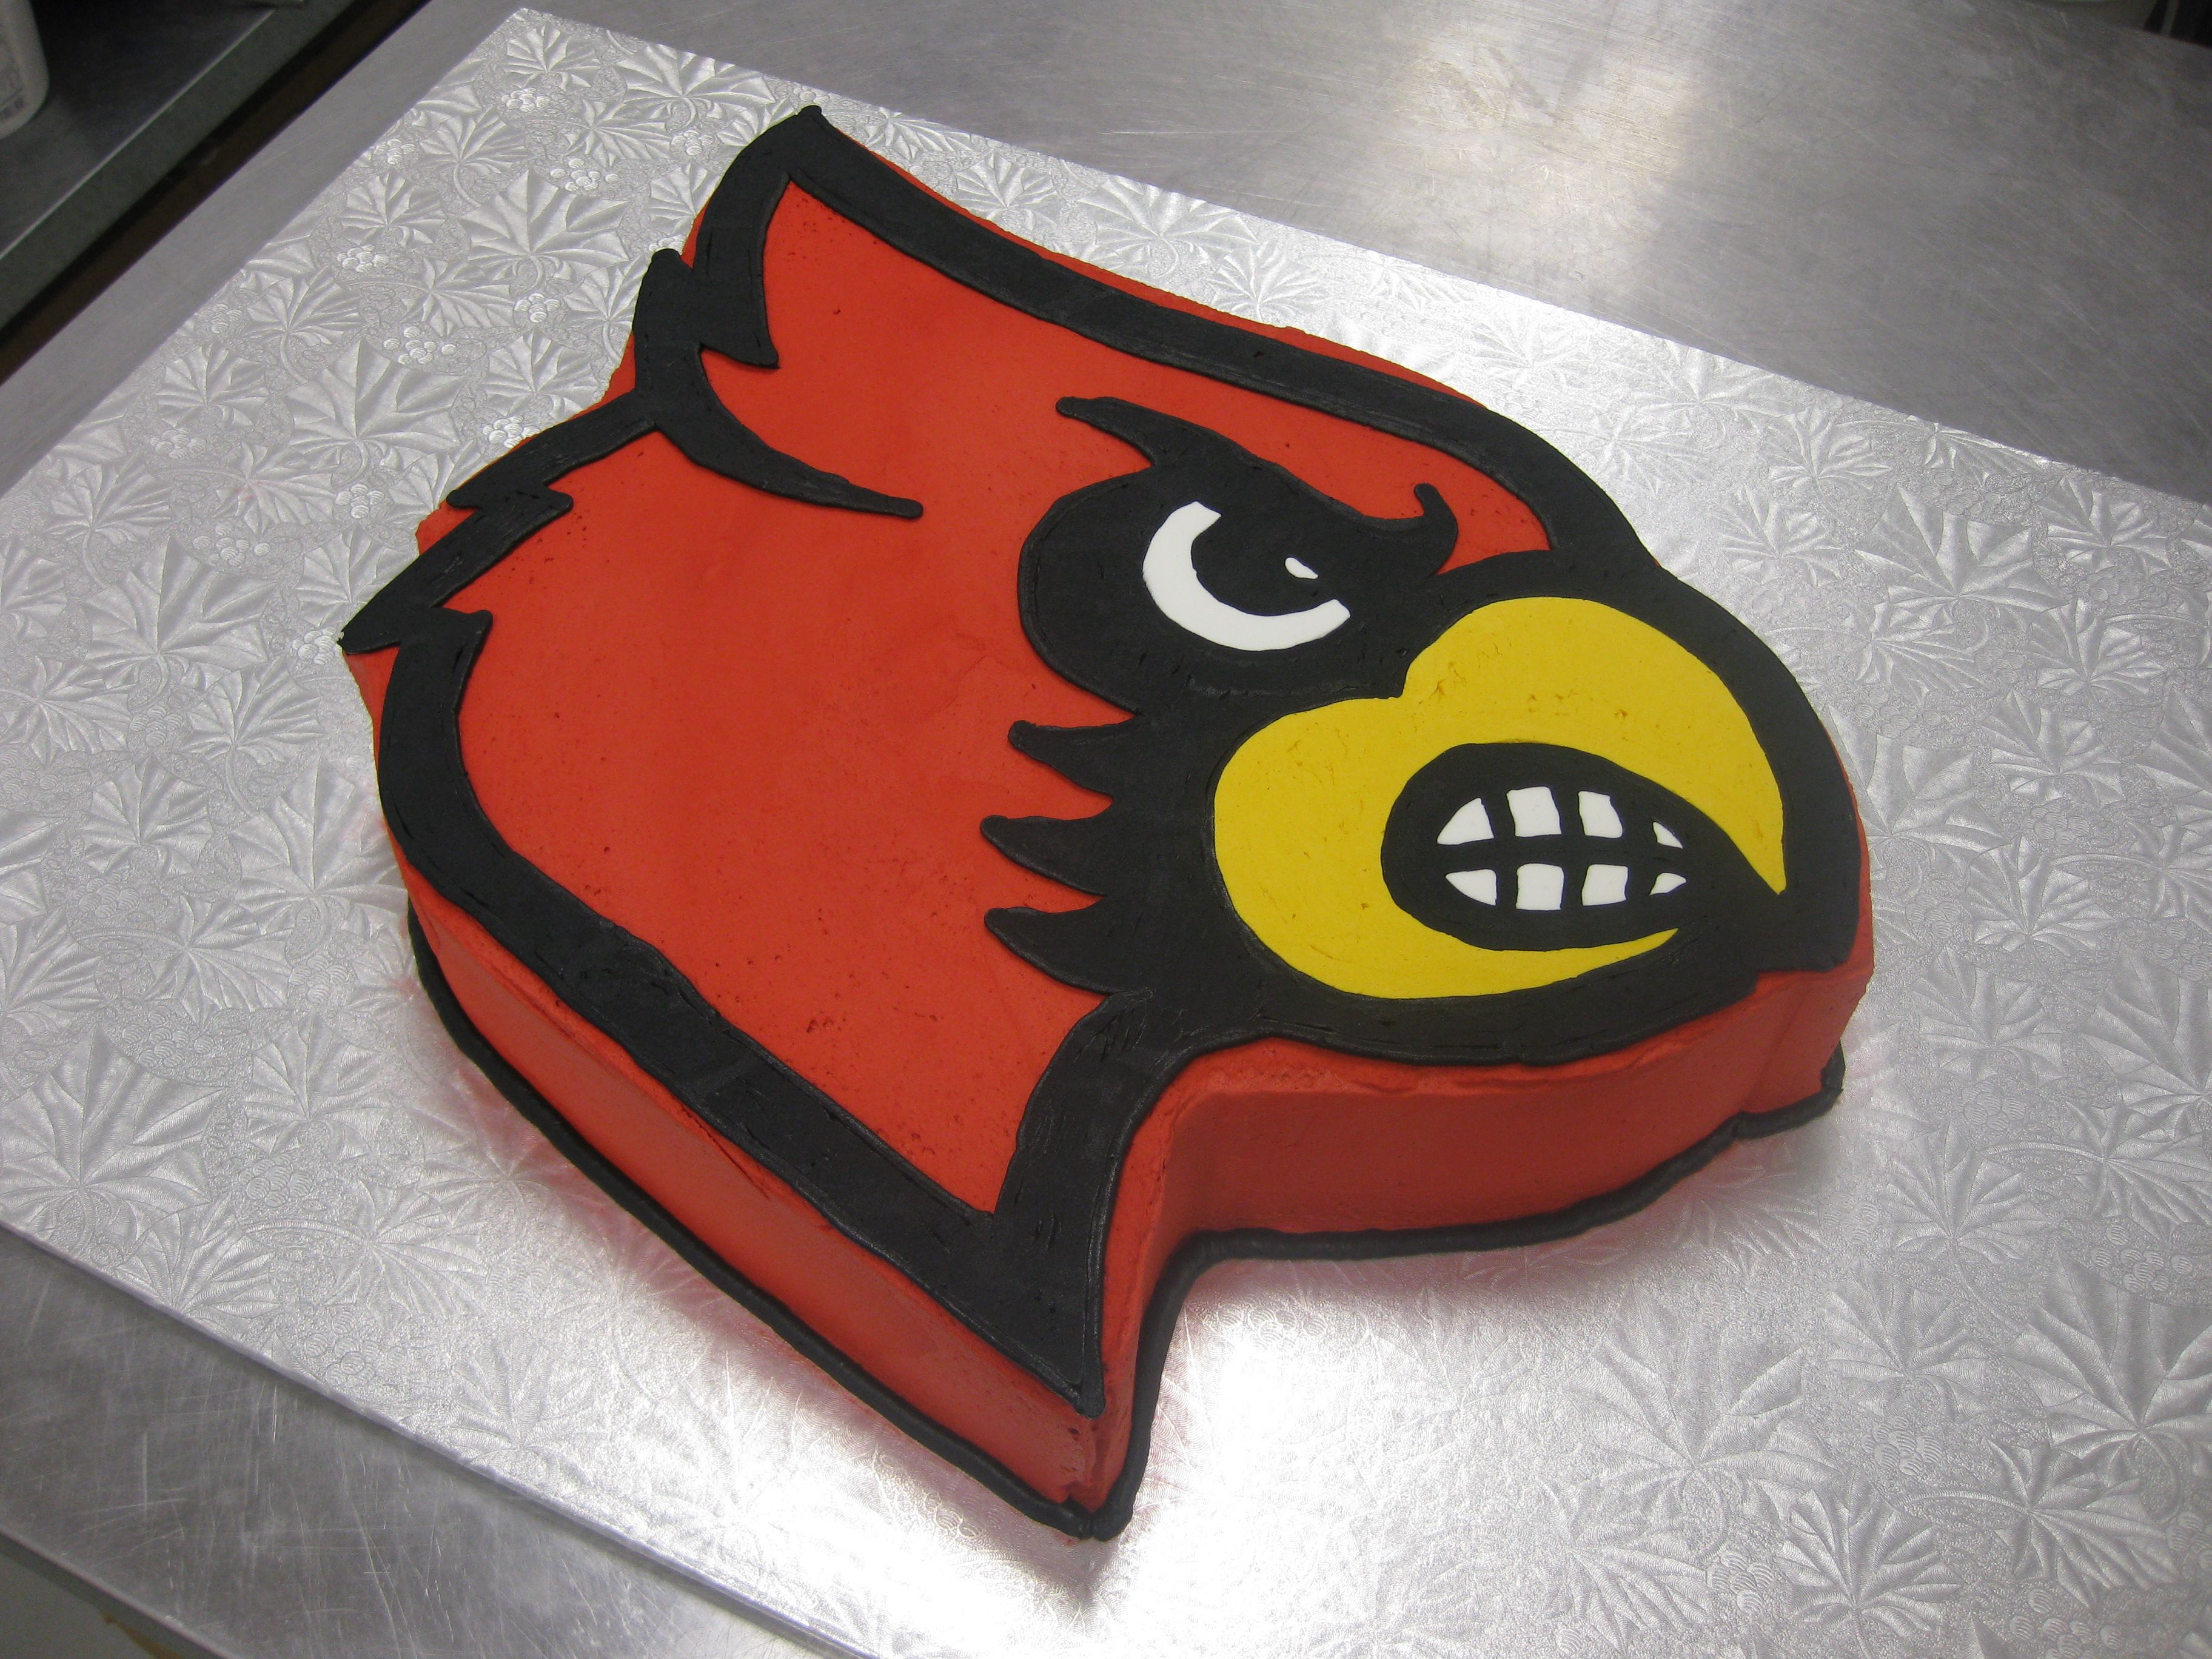 competitive price c0db9 dd825 University of Louisville Cardinals cake